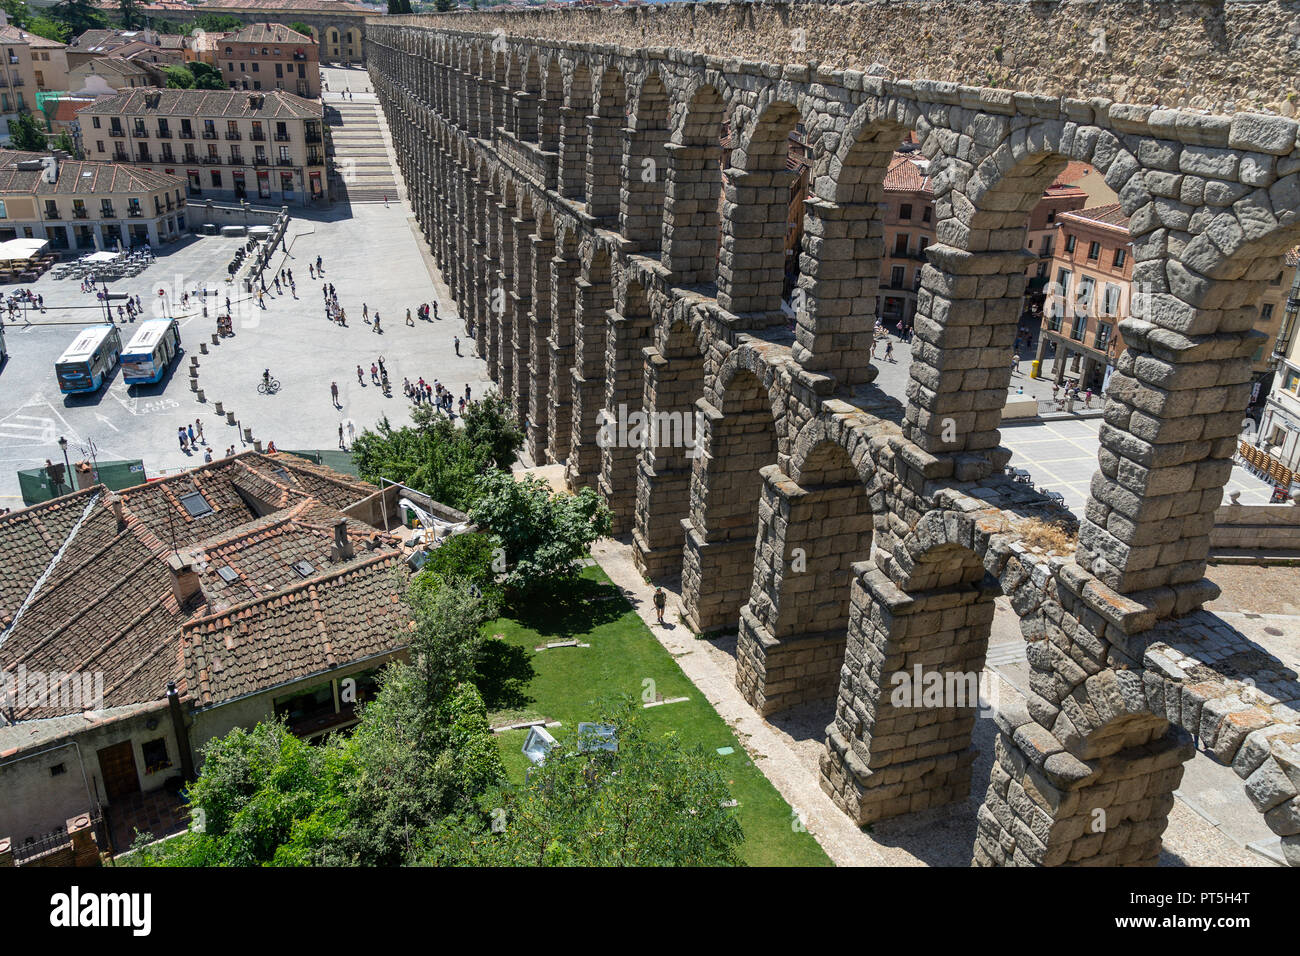 View of the famous Aqueduct of Segovia. Roman construction of the 1st century. Travel concept. Spain, Castile and Leon, Segovia. - Stock Image